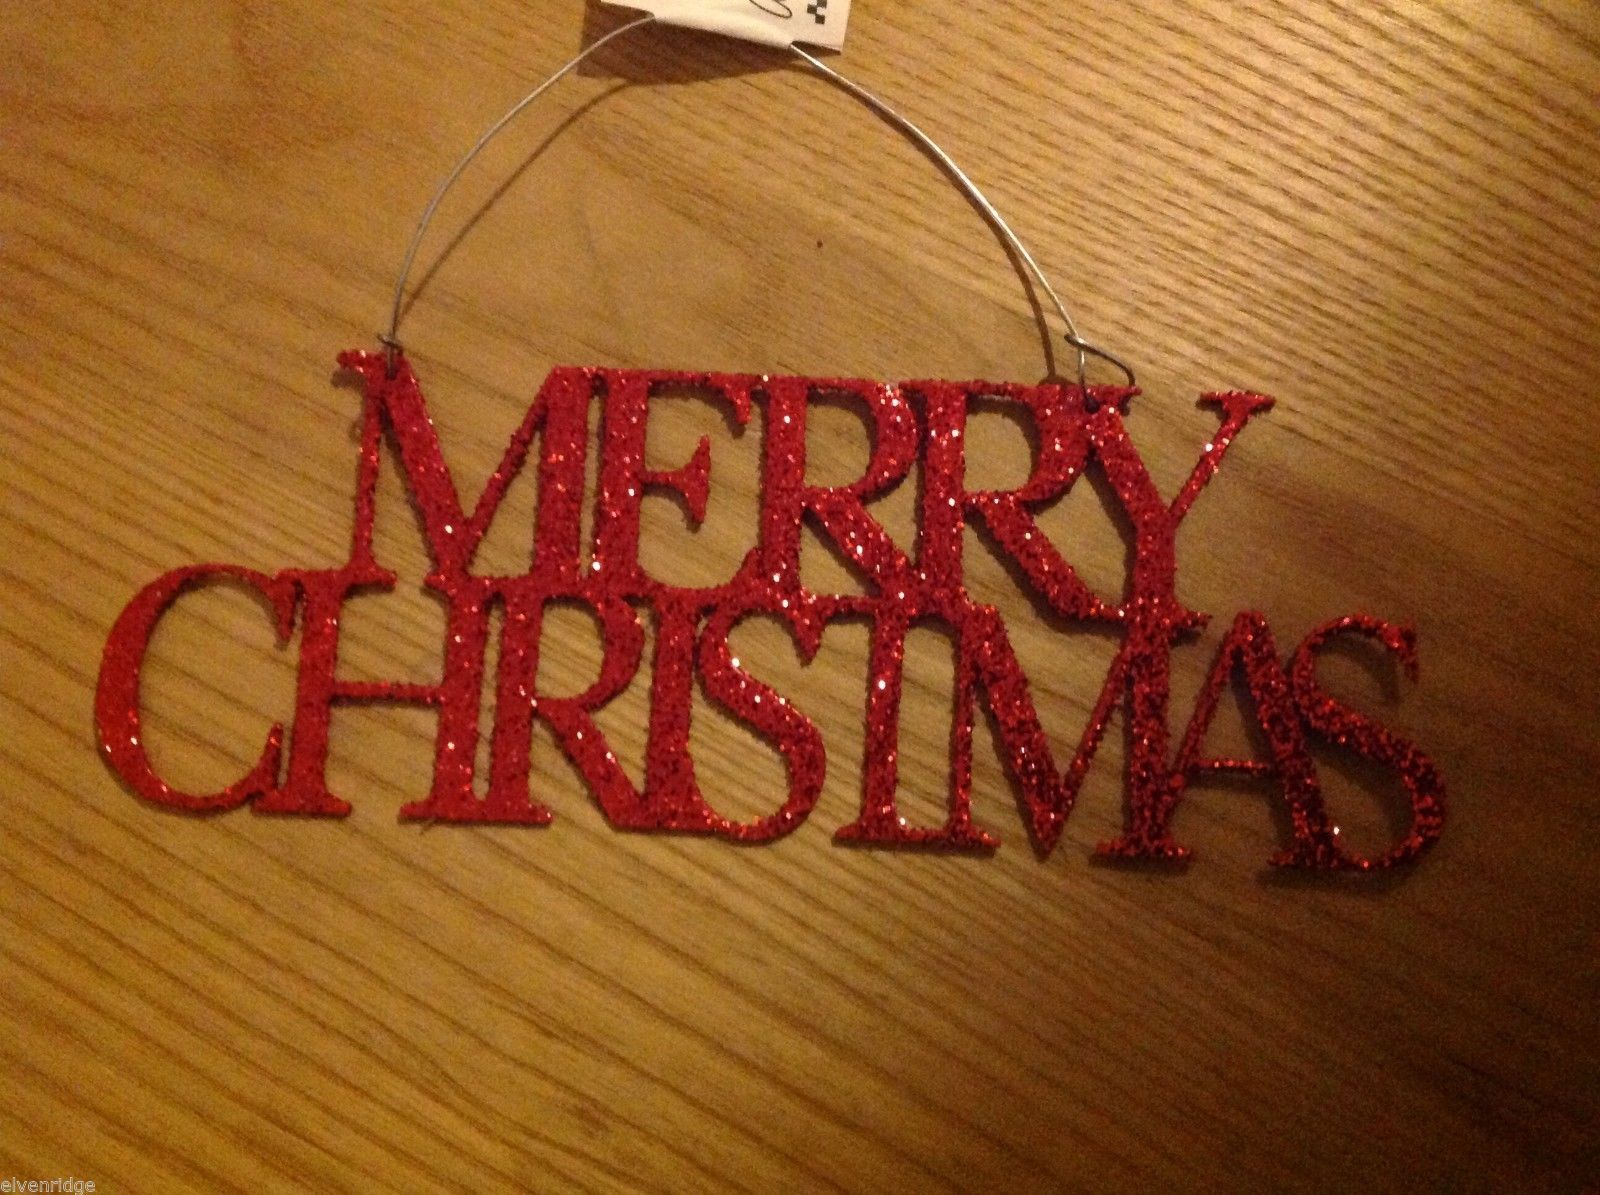 sparkly Merry Christmas hanging sign choice red or white glitter on sturdy metal